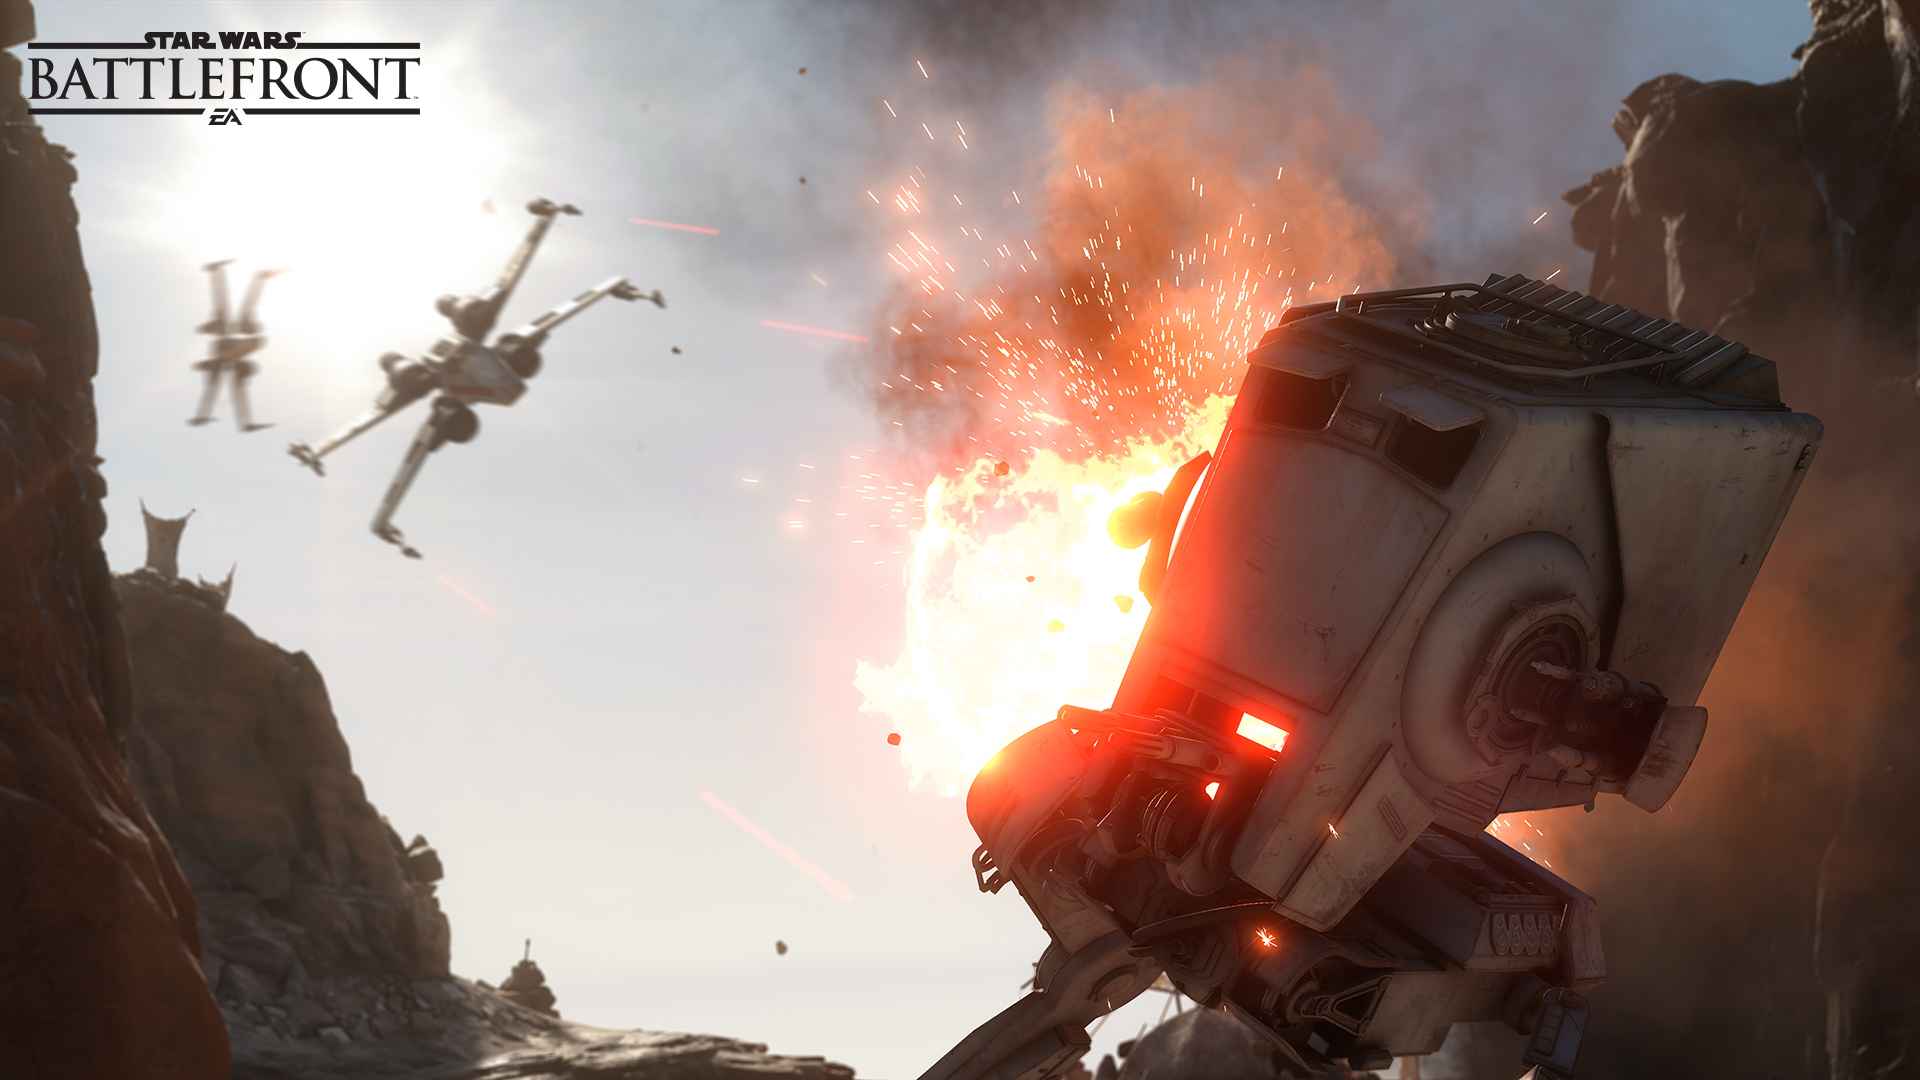 Star Wars Battlefront's Beta Will Be Open To All